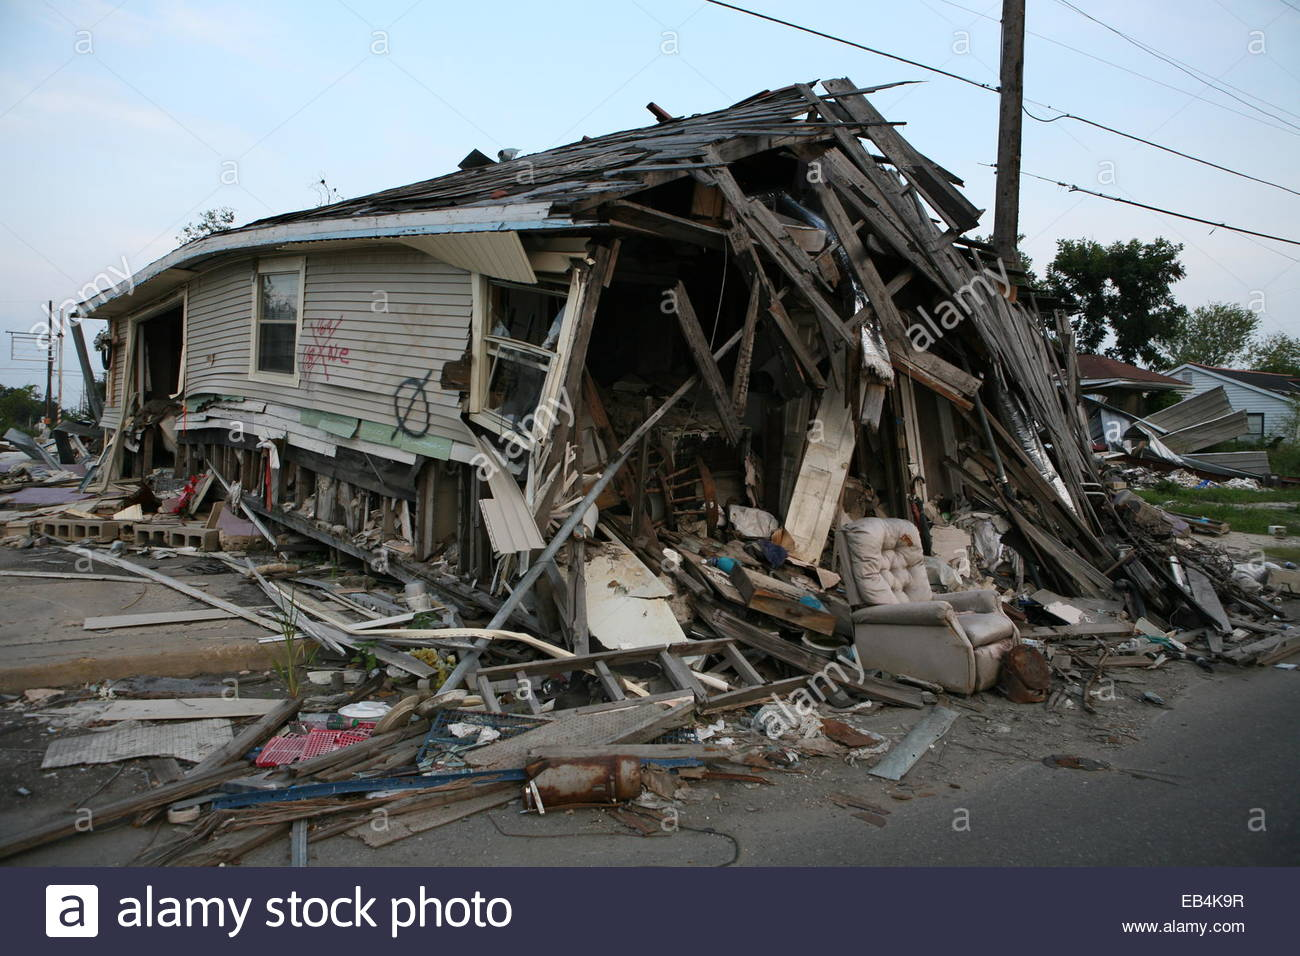 Houses in Lower Ninth Ward of New Orleans that were severely damaged during Katrina. - Stock Image